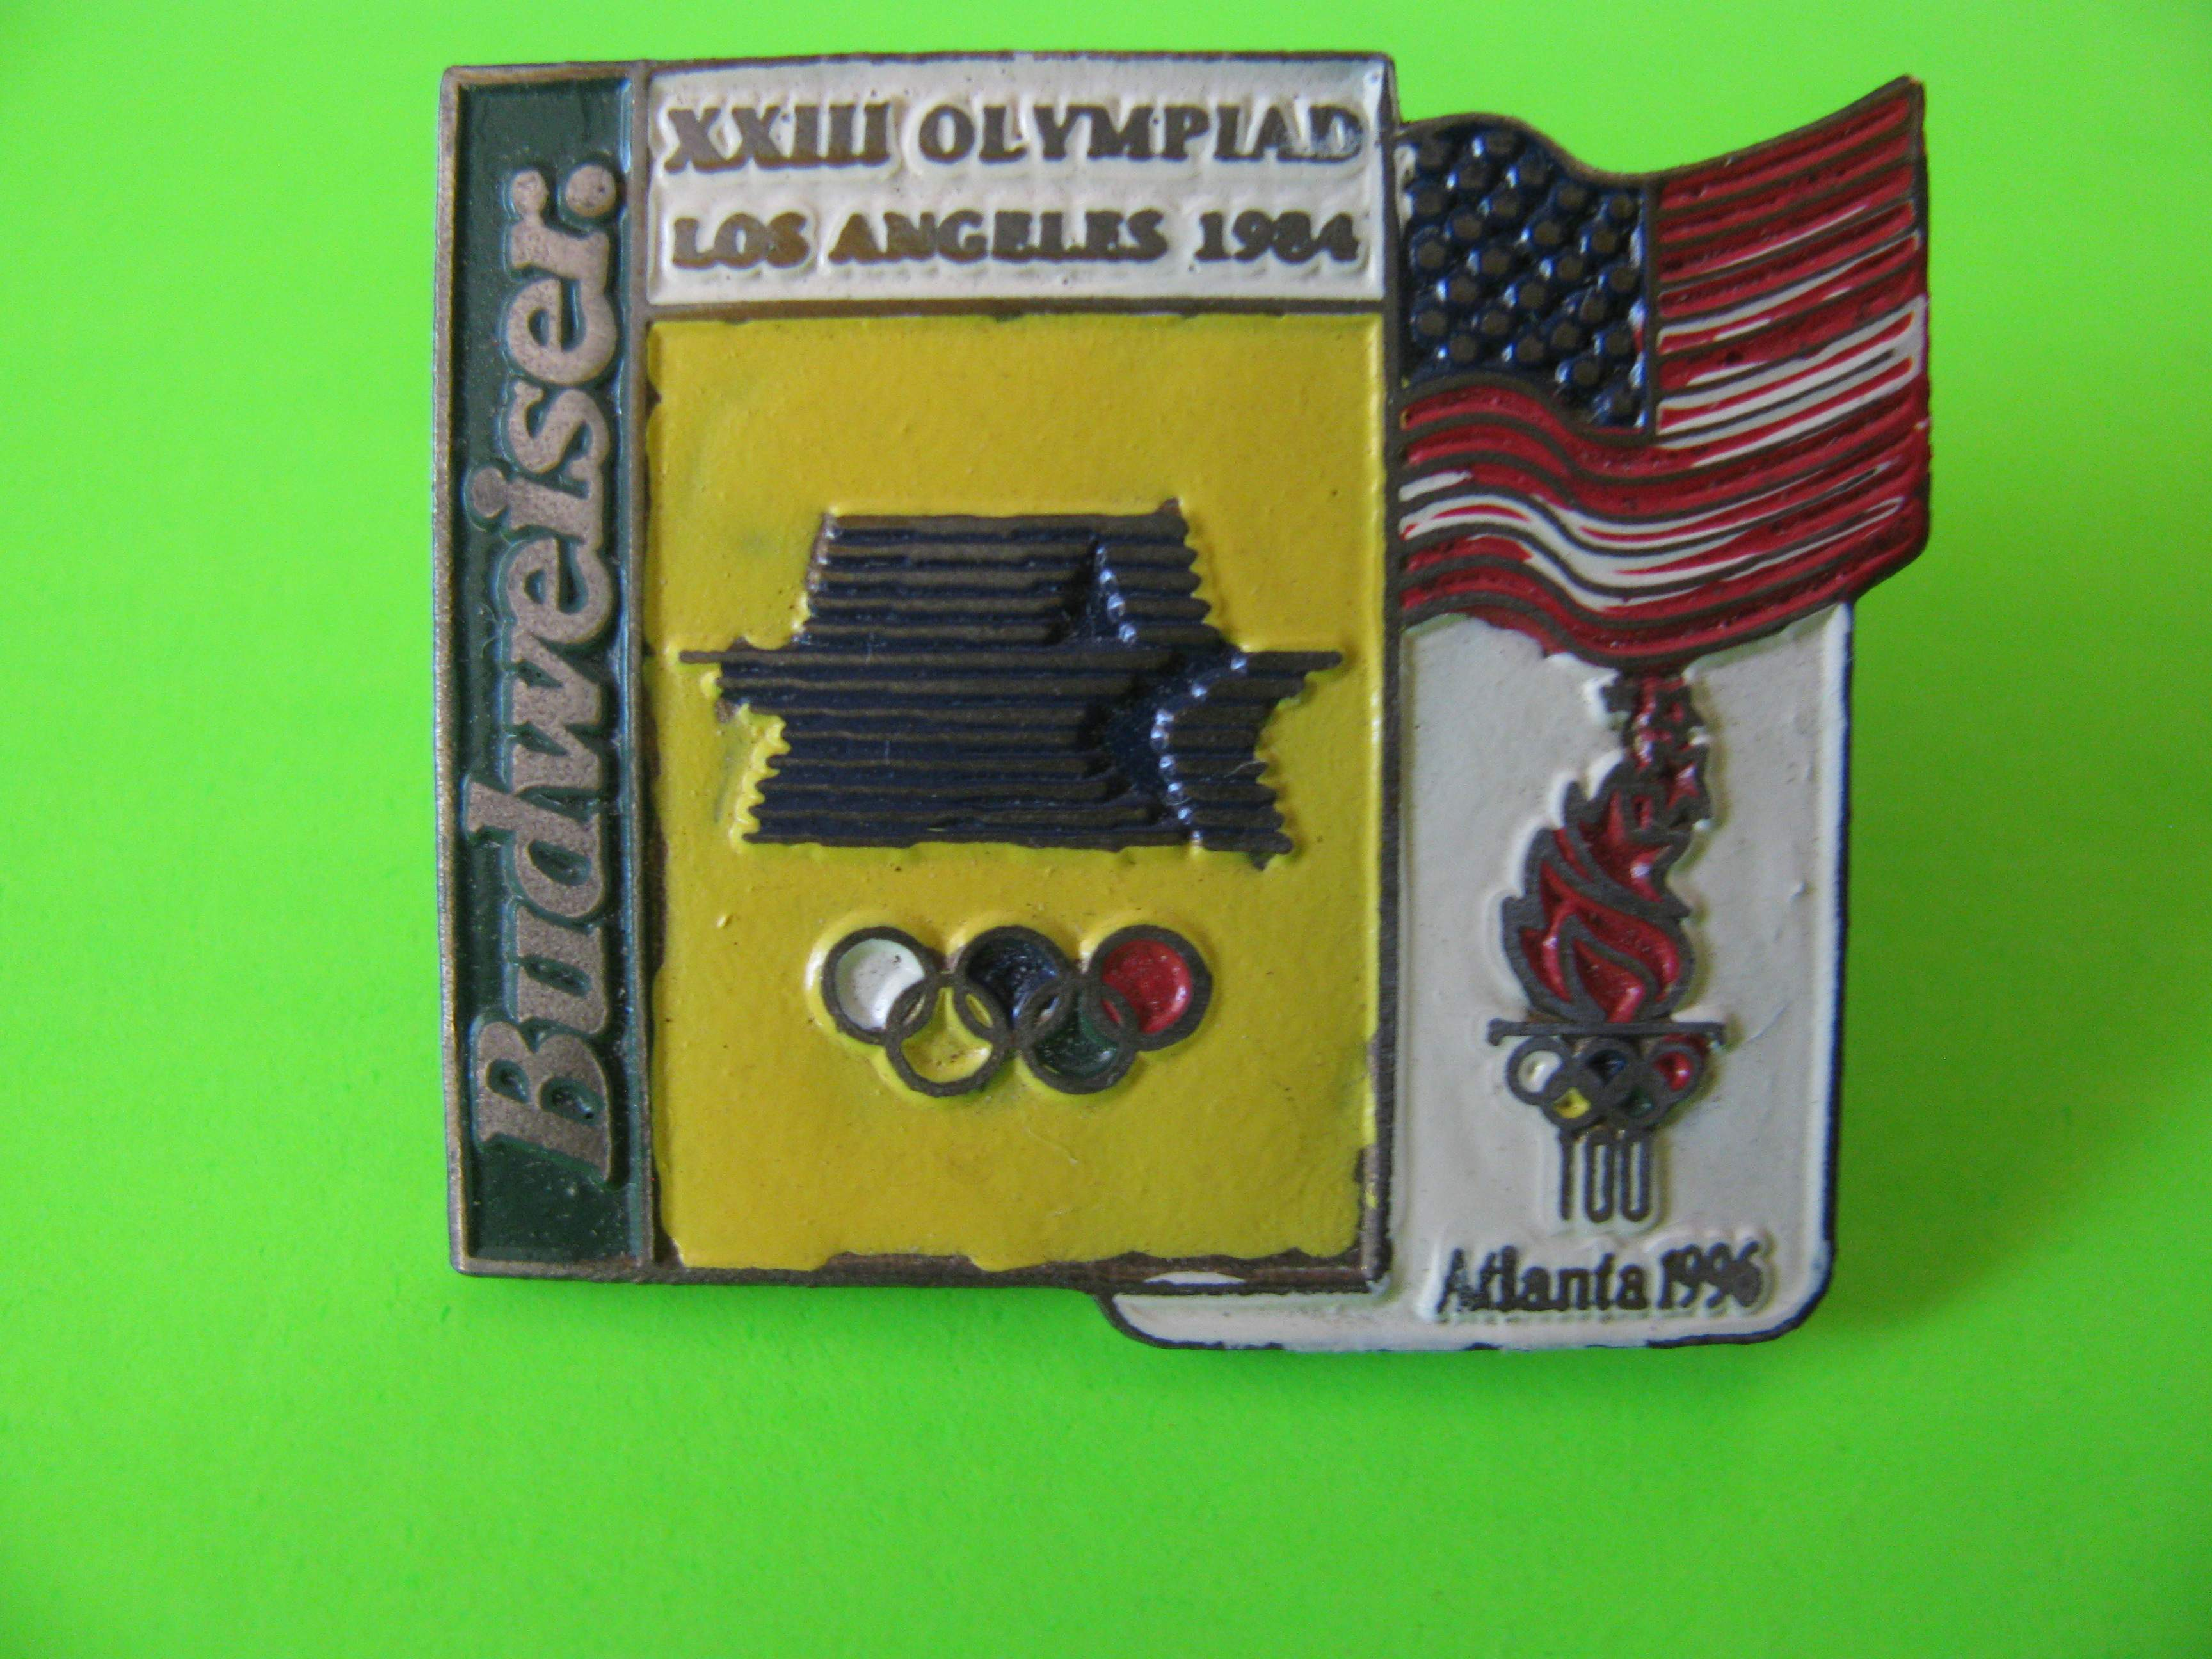 XXIII Olympiad Los Angeles 1984 to Atlanta 1996 Budweiser Promo Pin with Butterfly Clutch